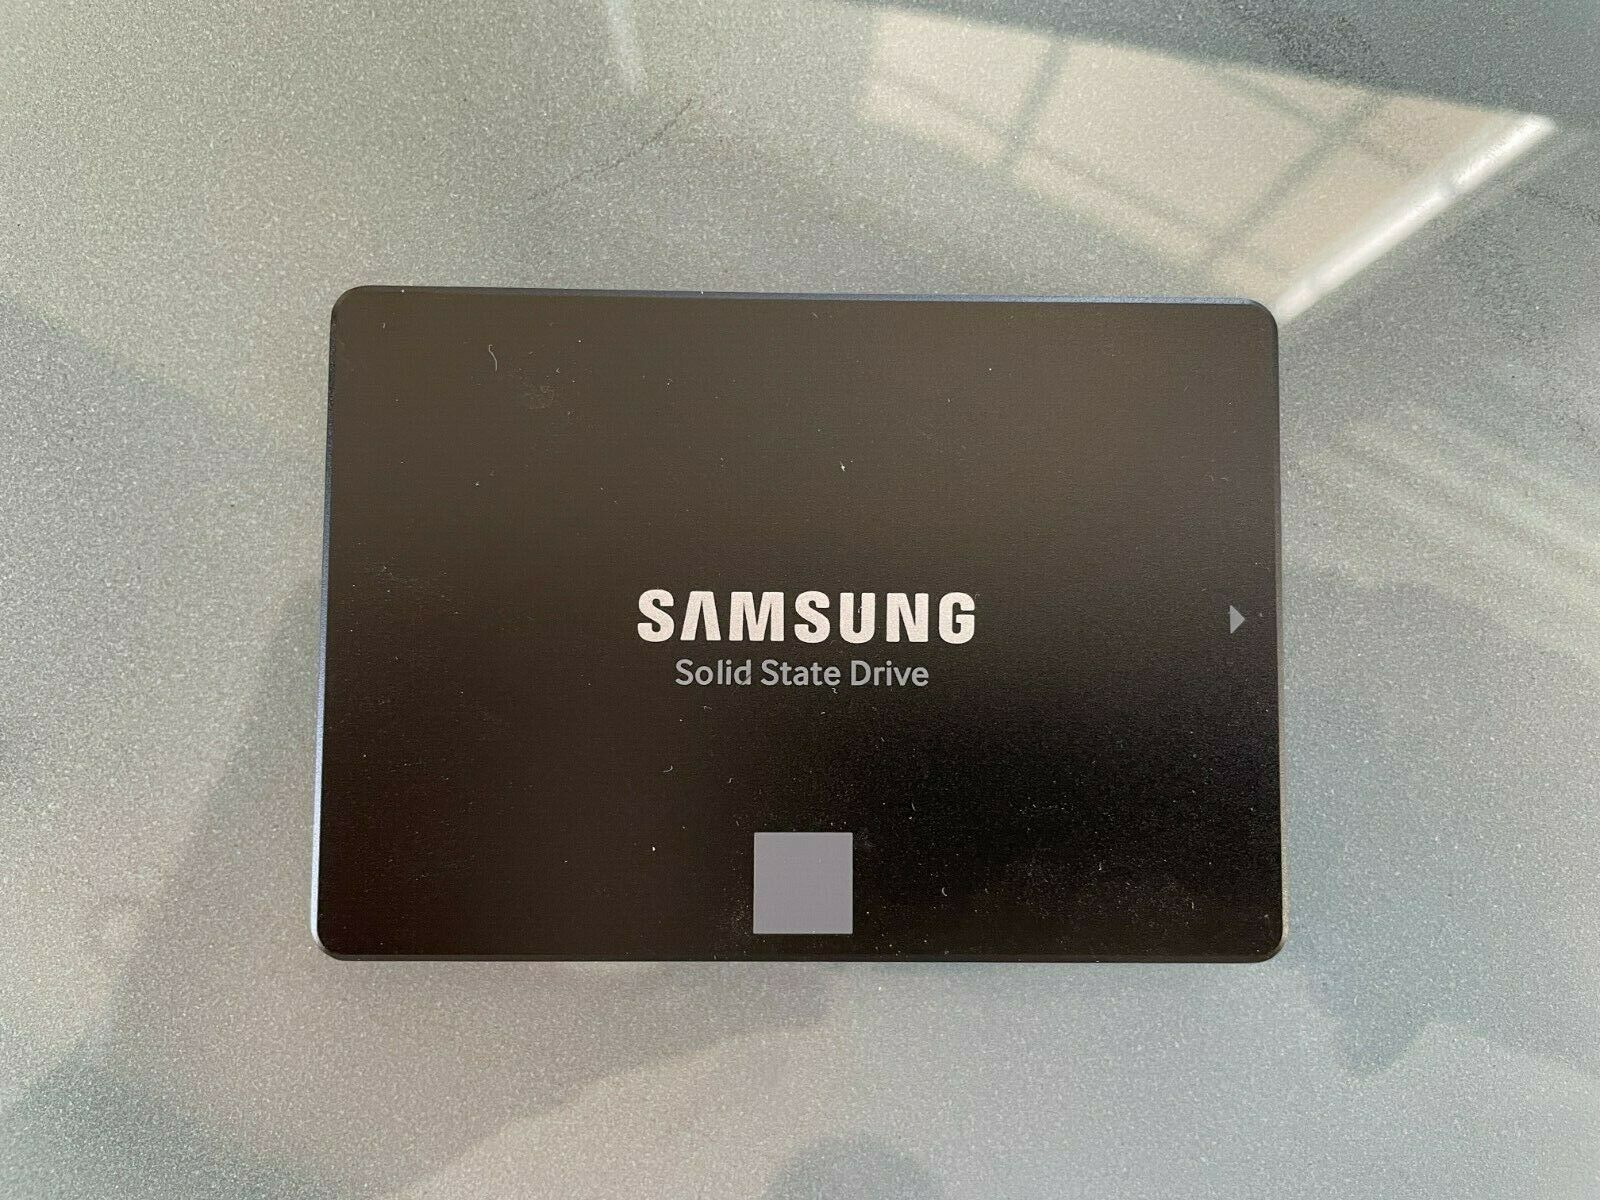 Samsung 860 EVO 250GB Internal SSD 2.5 inch (MZ76E250BAM) Solid State Drive. Buy it now for 39.99